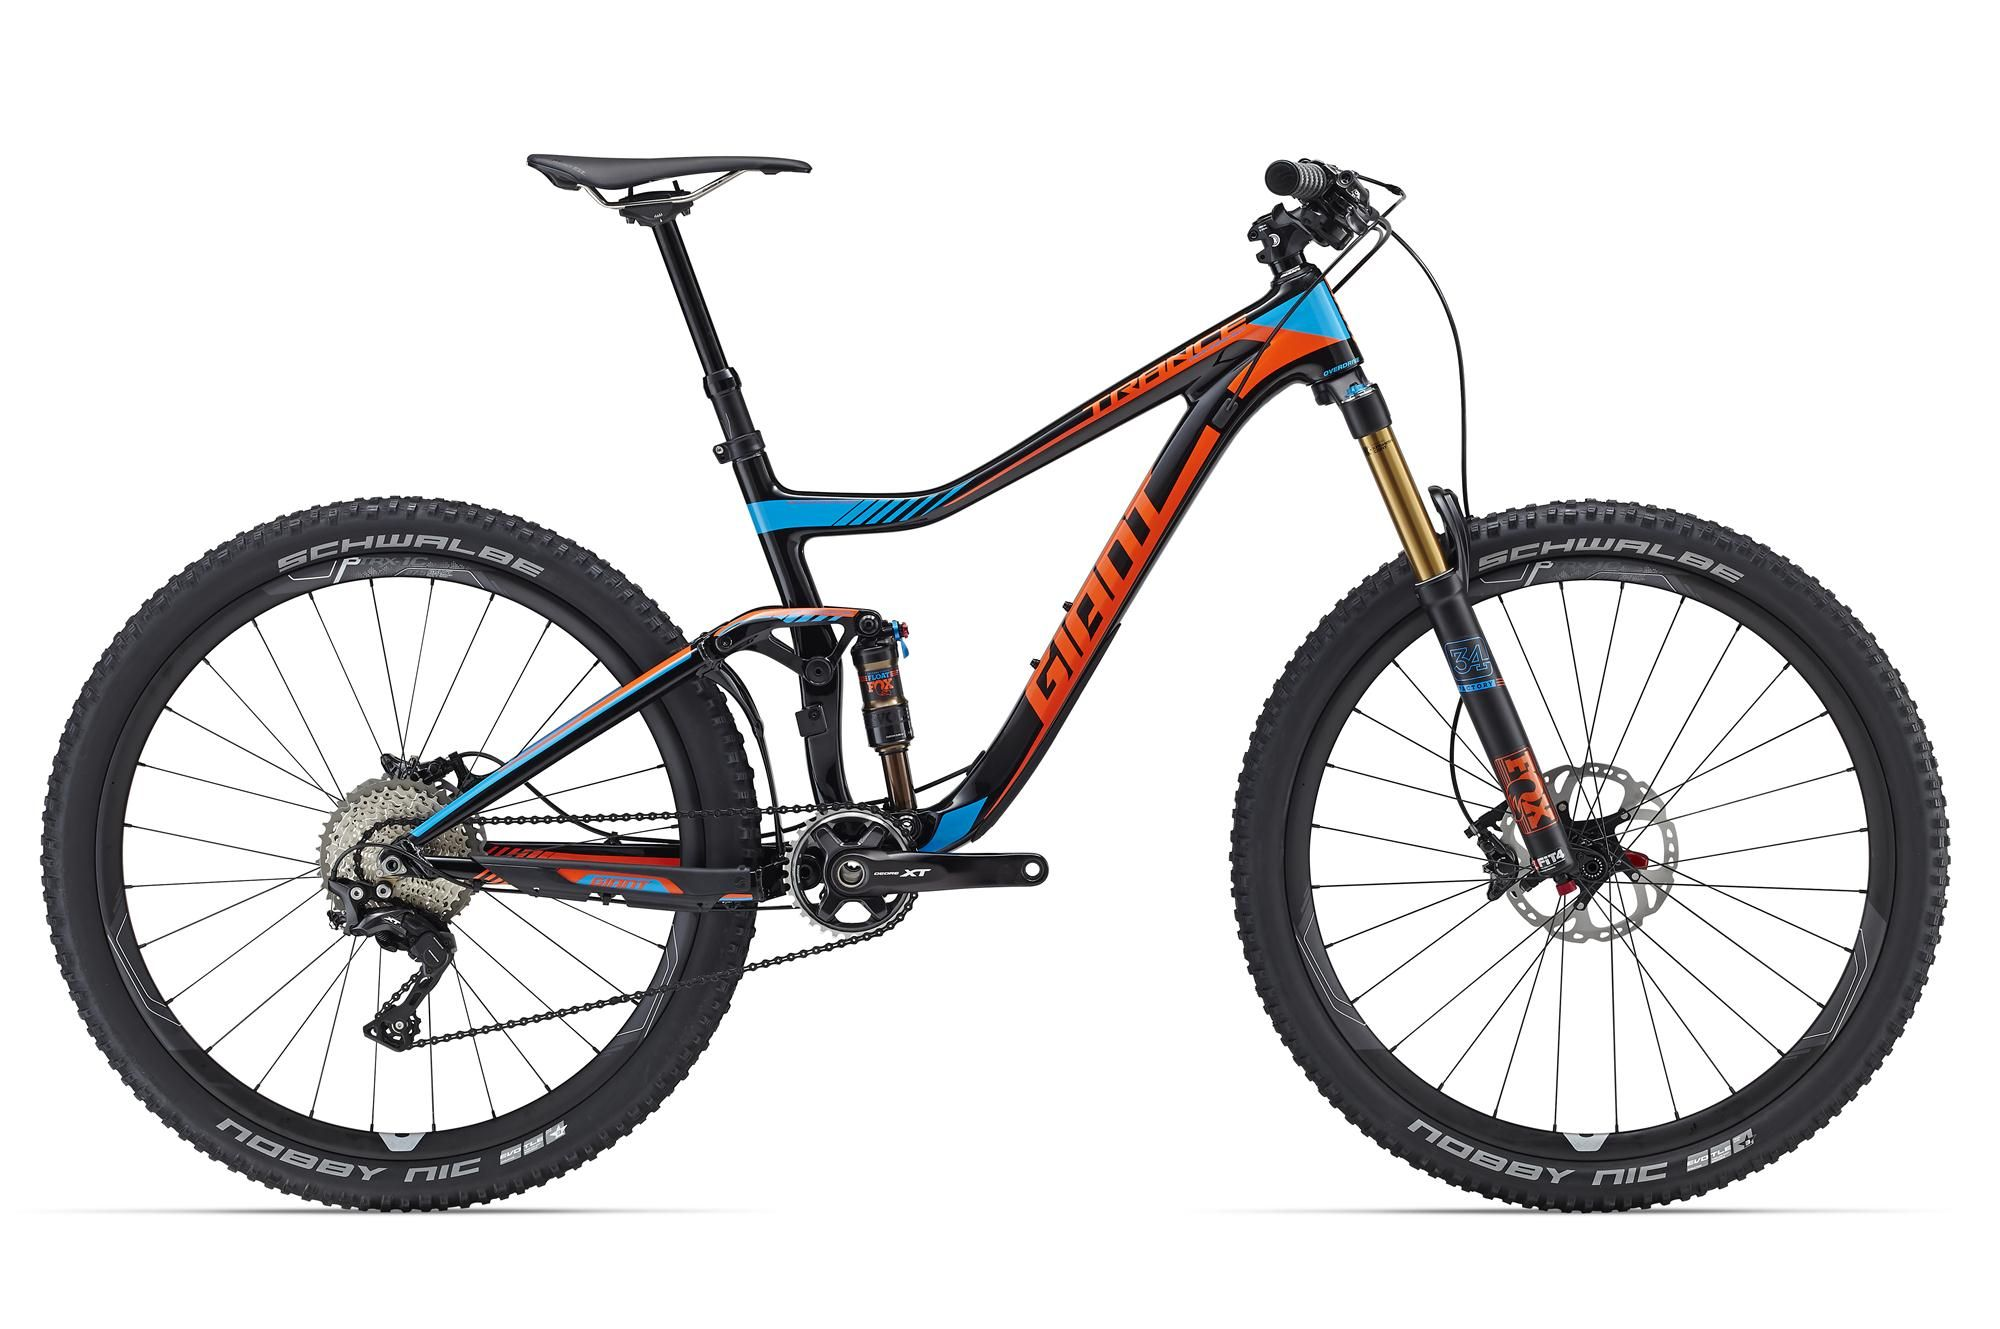 Велосипед Giant Trance Advanced 27.5 1 2016 велосипед giant tcx 1 2013